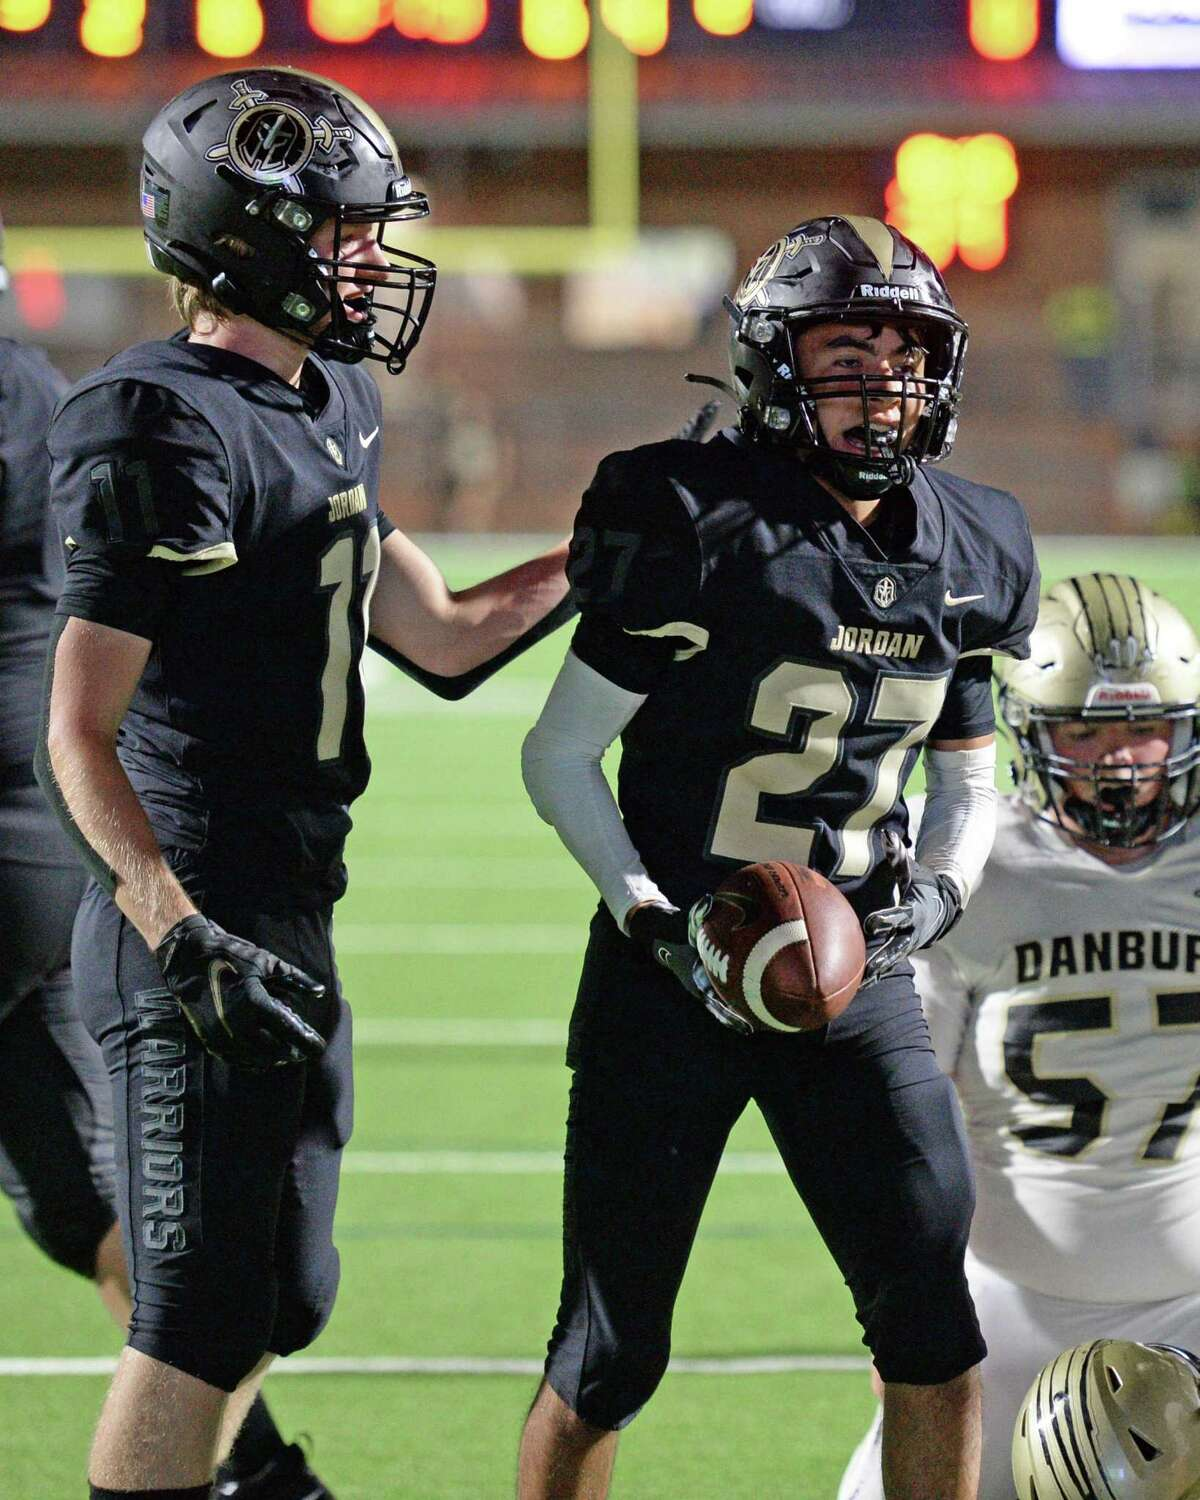 Kanaan Ibarra (27) and Ethan Beach (11) of Jordan react after a touchdown during the fourth quarter of a non-District football game between the Jordan Warriors and the Danbury Panthers on Friday, September 3, 2021 at Rhodes Stadium, Katy, TX.